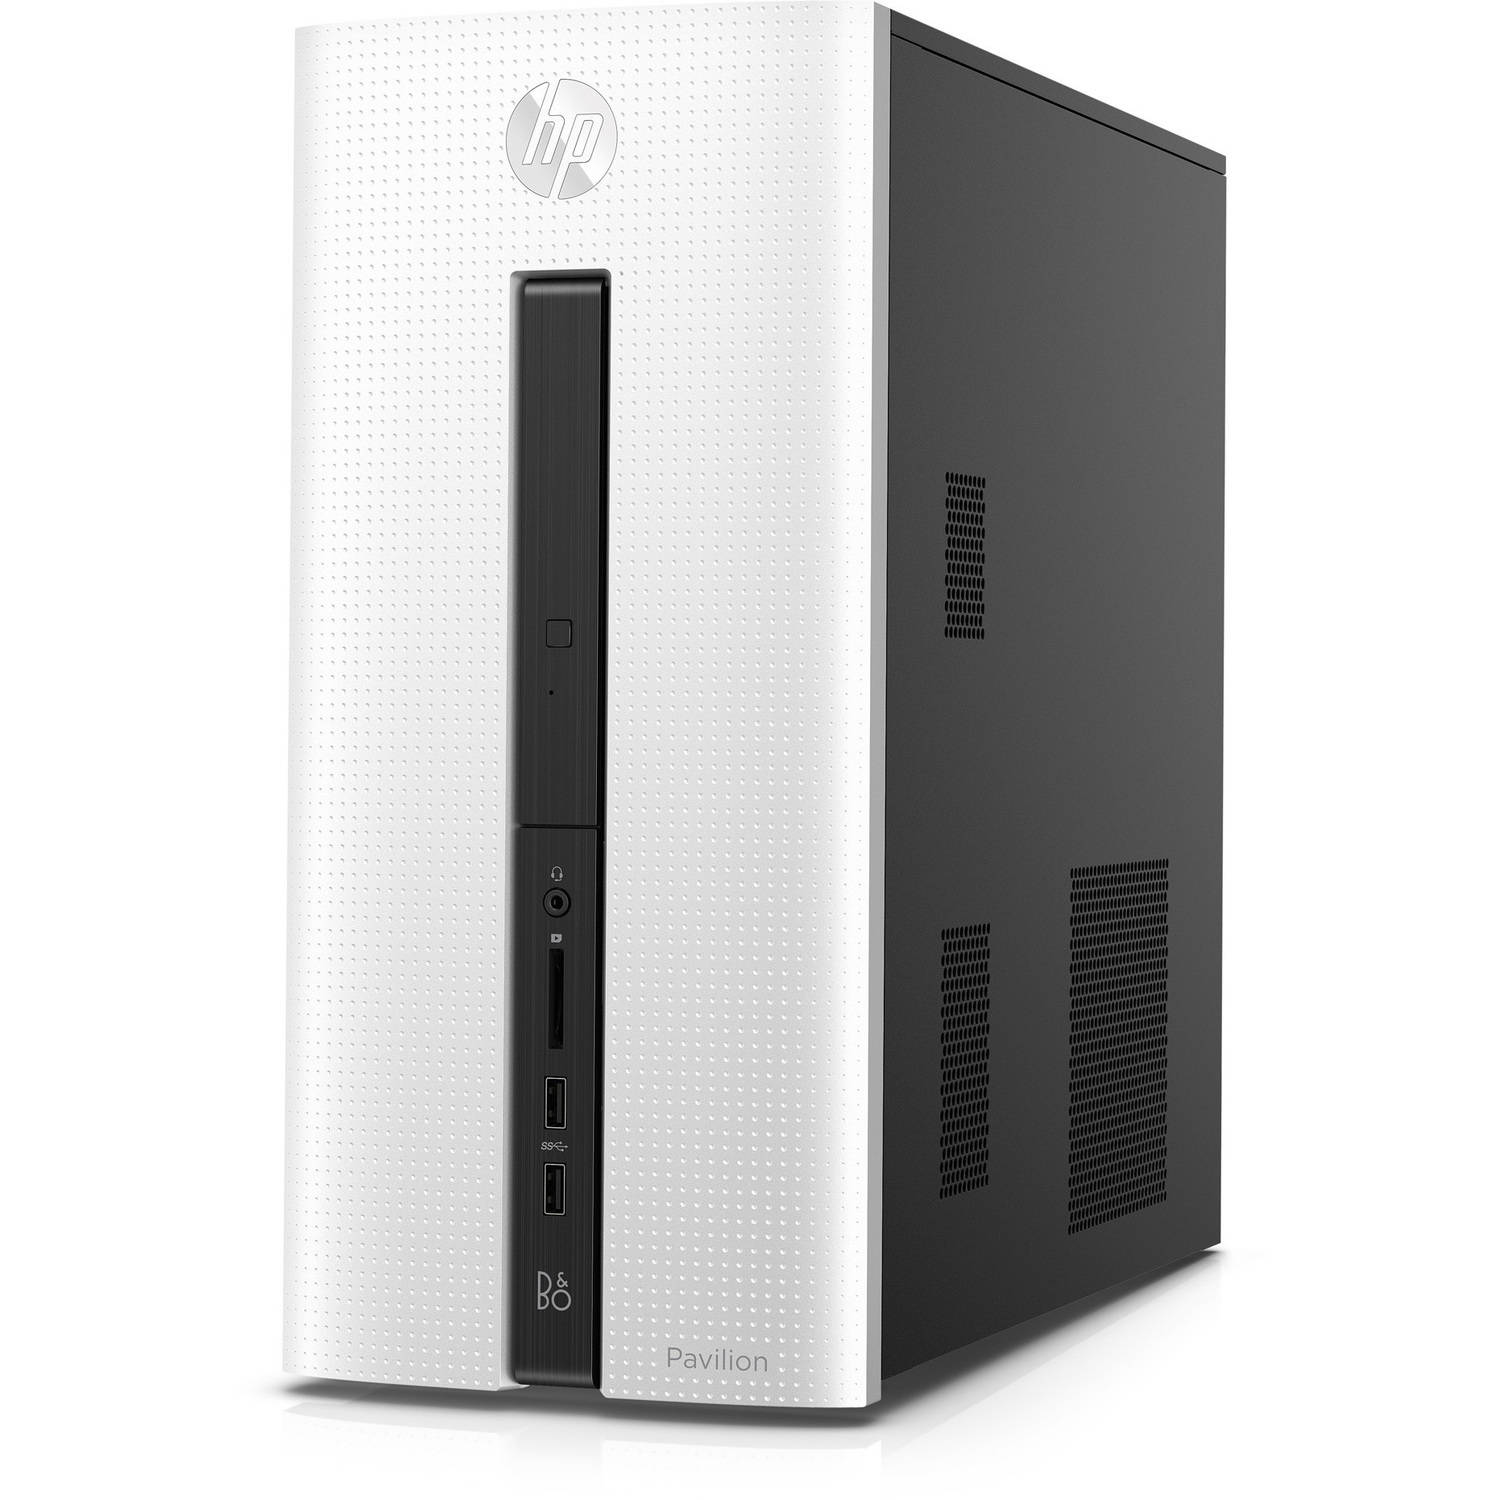 hp pavilion 550 150 desktop intel core i5 6400 2 7ghz 8gb. Black Bedroom Furniture Sets. Home Design Ideas